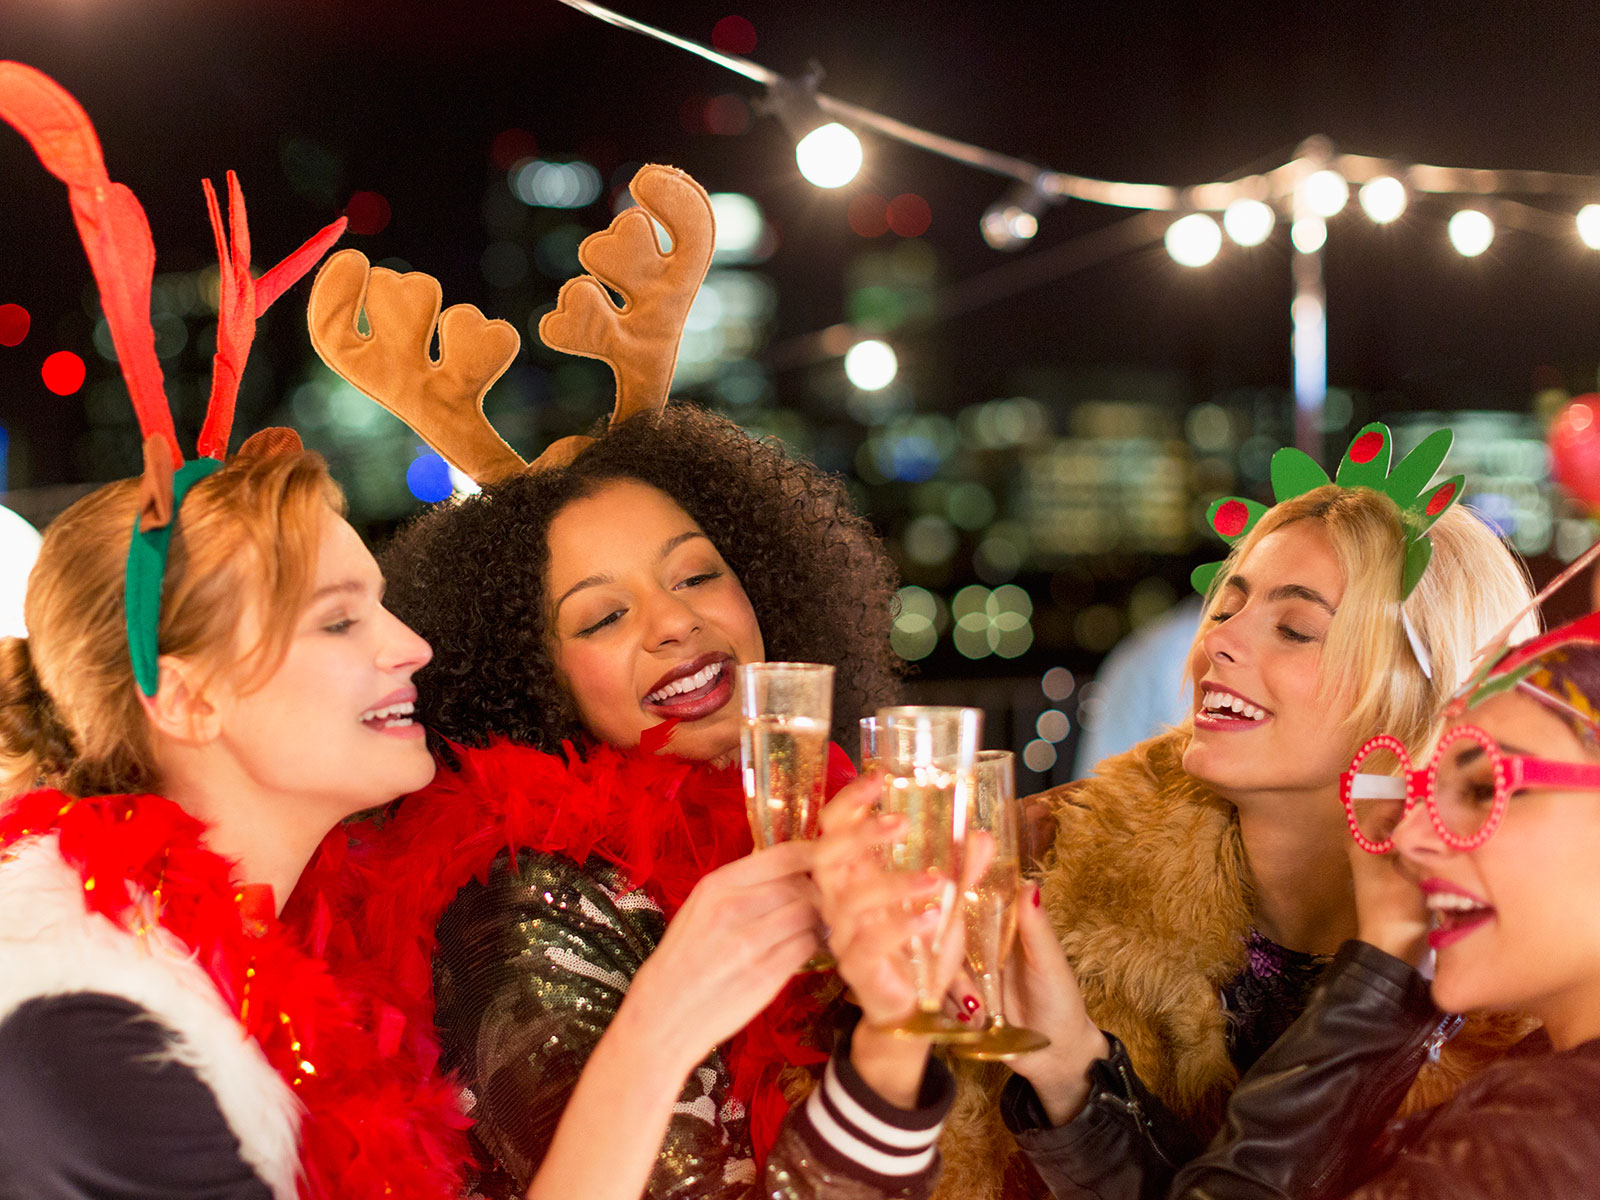 Everything You Need to Make Your Holiday Party Drinks Table a Hit